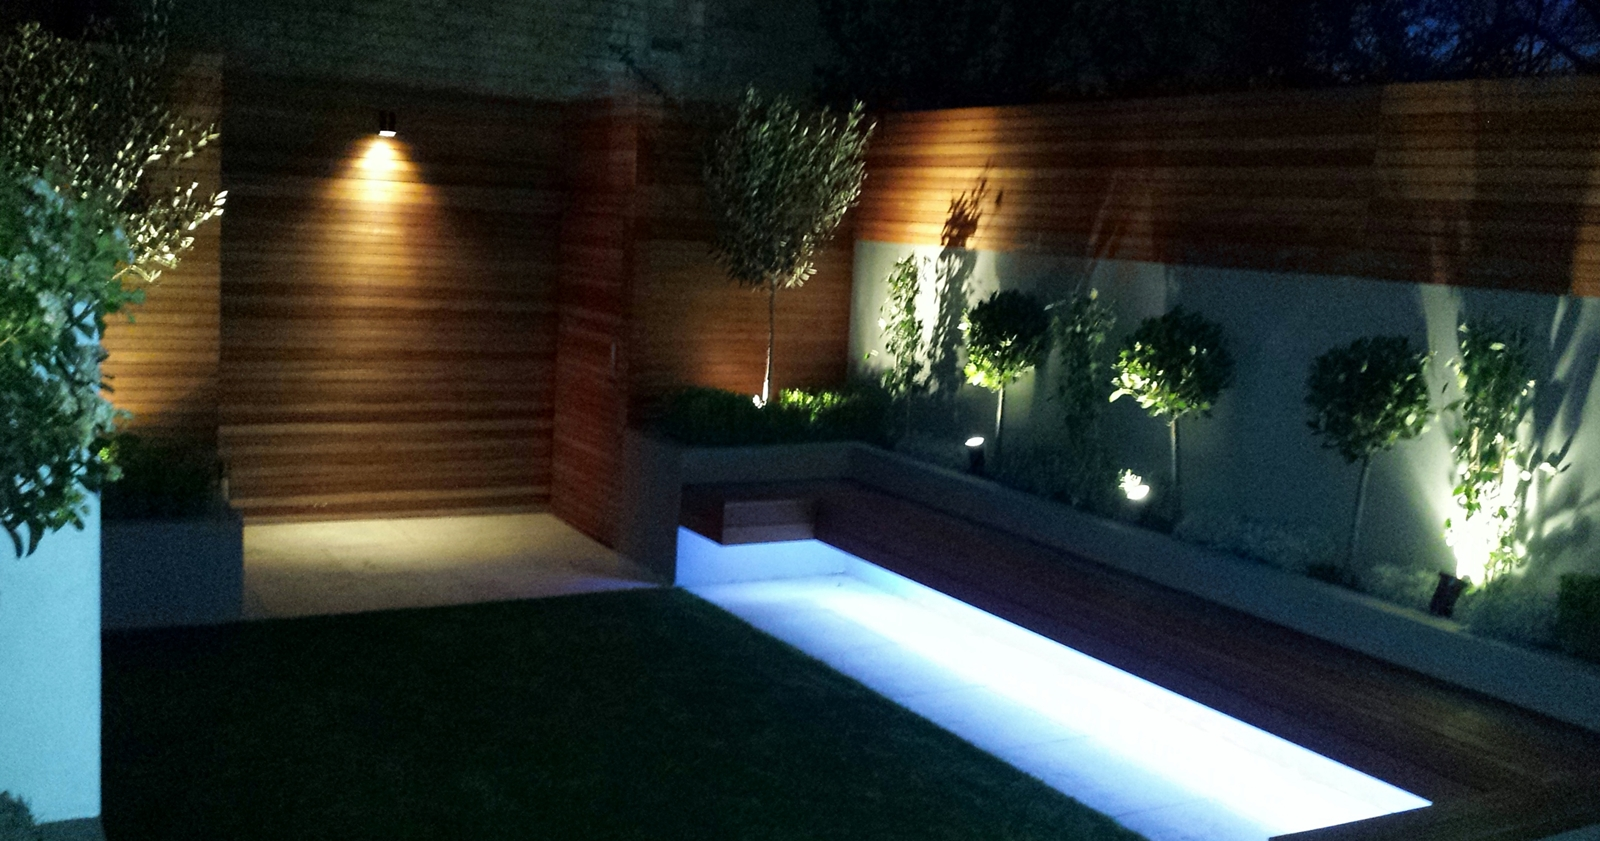 Modern garden design ideas great lighting fireplace hardwood screen plastered rendered walls clapham battersea  south west london LED strip lights formal low maintenance planting